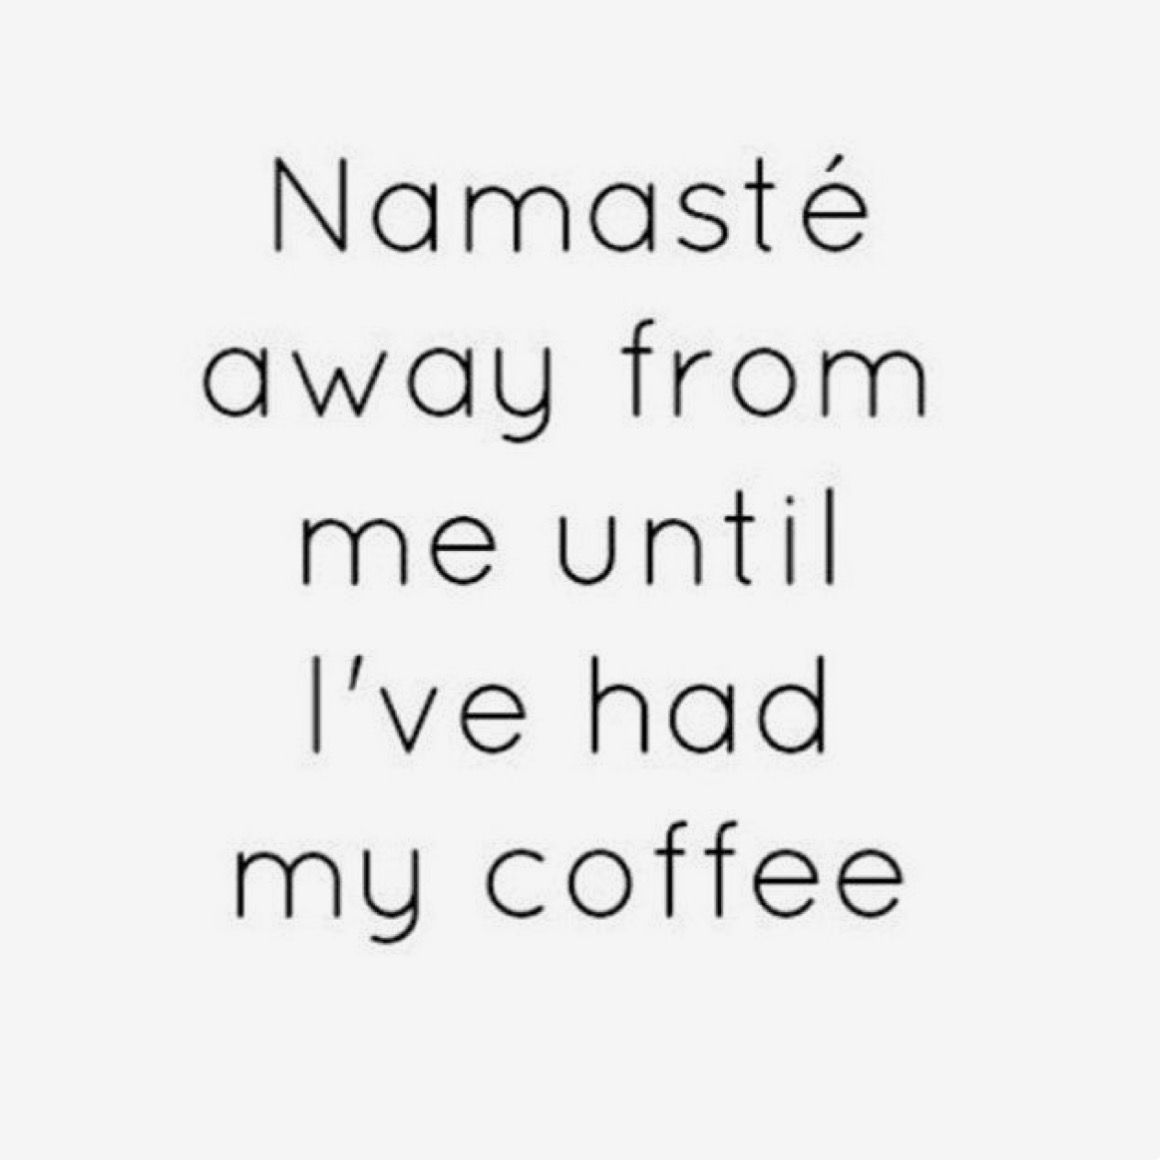 Namaste Away From Me Funny Yoga Quotes Yoga Quotes Funny Namaste Quotes Yoga Funny